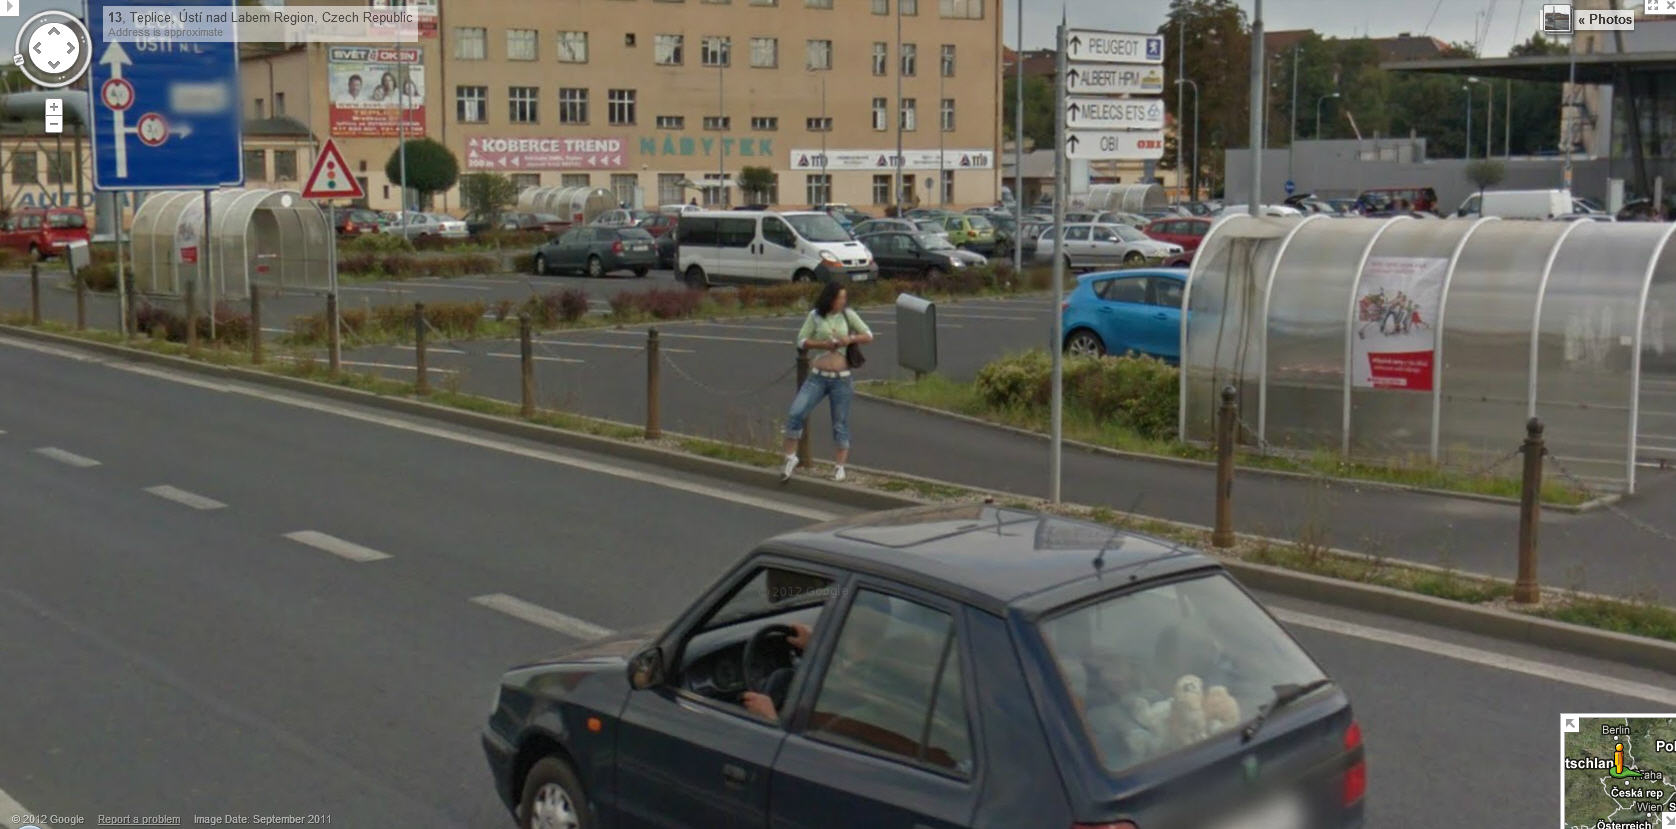 google-maps-street-view-captures-another-flasher-in-the-czech-republic